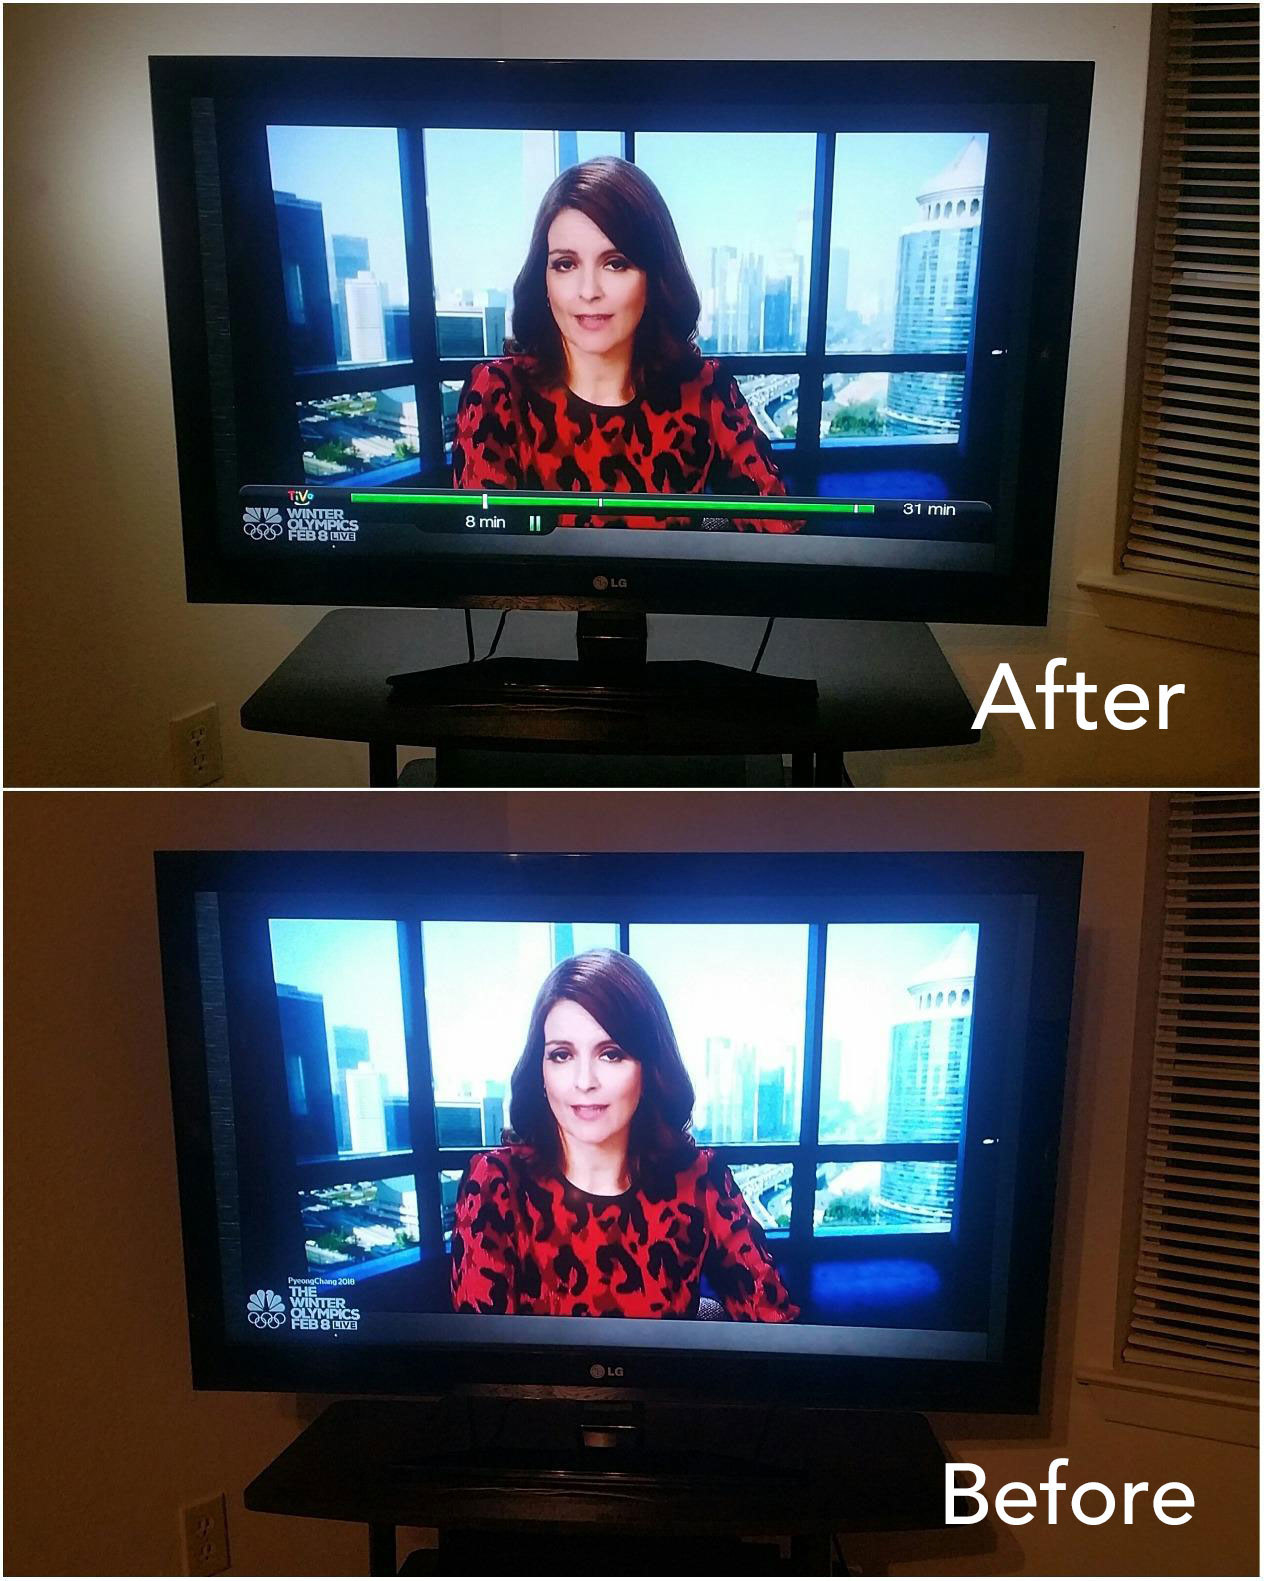 Reviewer before/after: the TV without backlighting looking harsh with less defined colors on the bottom and the TV with backlighting with more vibrant colors, making it easier to look at